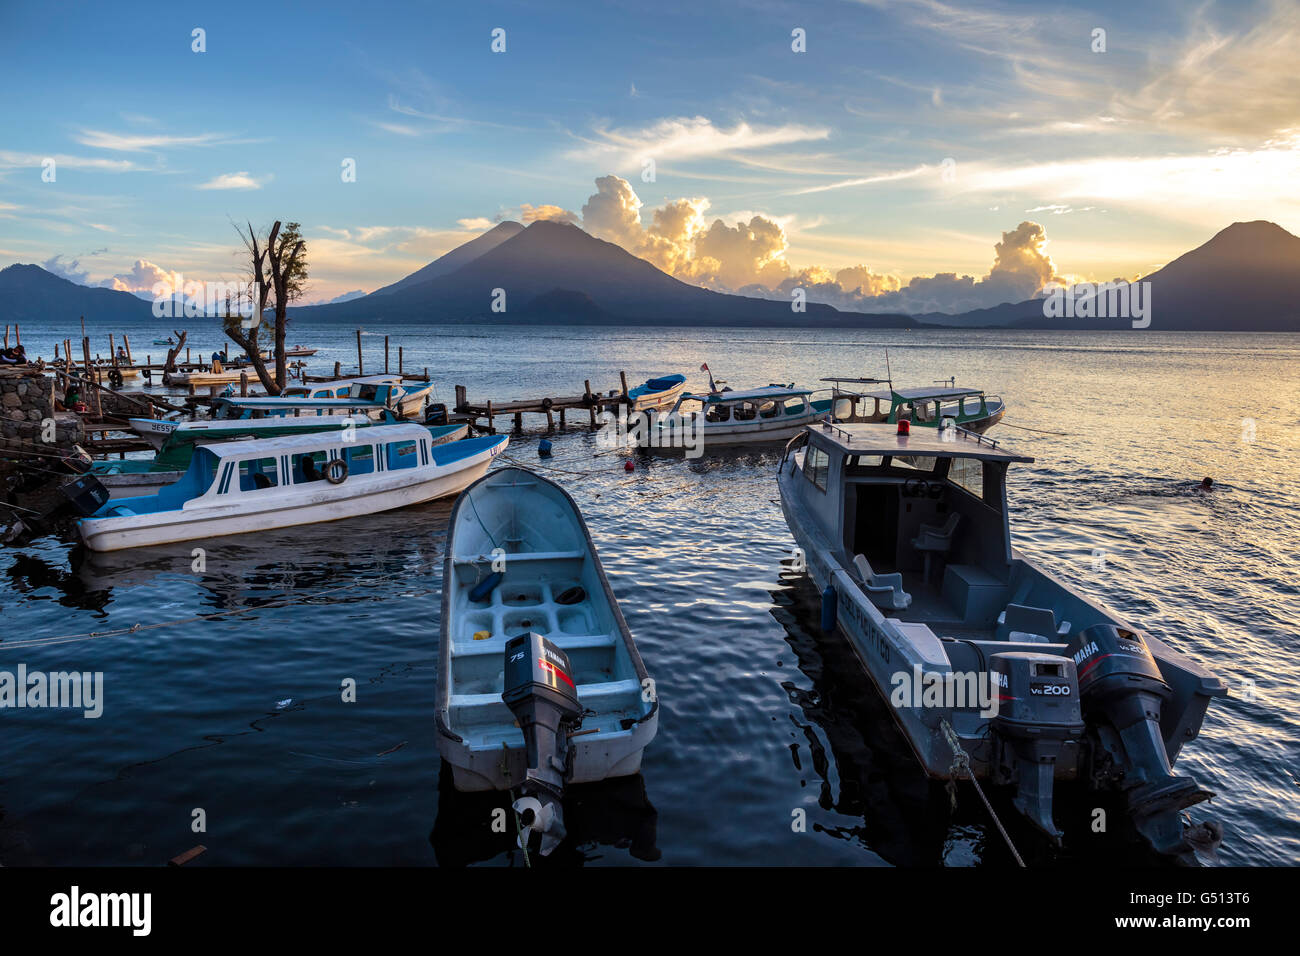 Sunset over the volcanoes of Lago de Atitlan in Guatemala and water taxis sit moored at the docks of the tourist - Stock Image